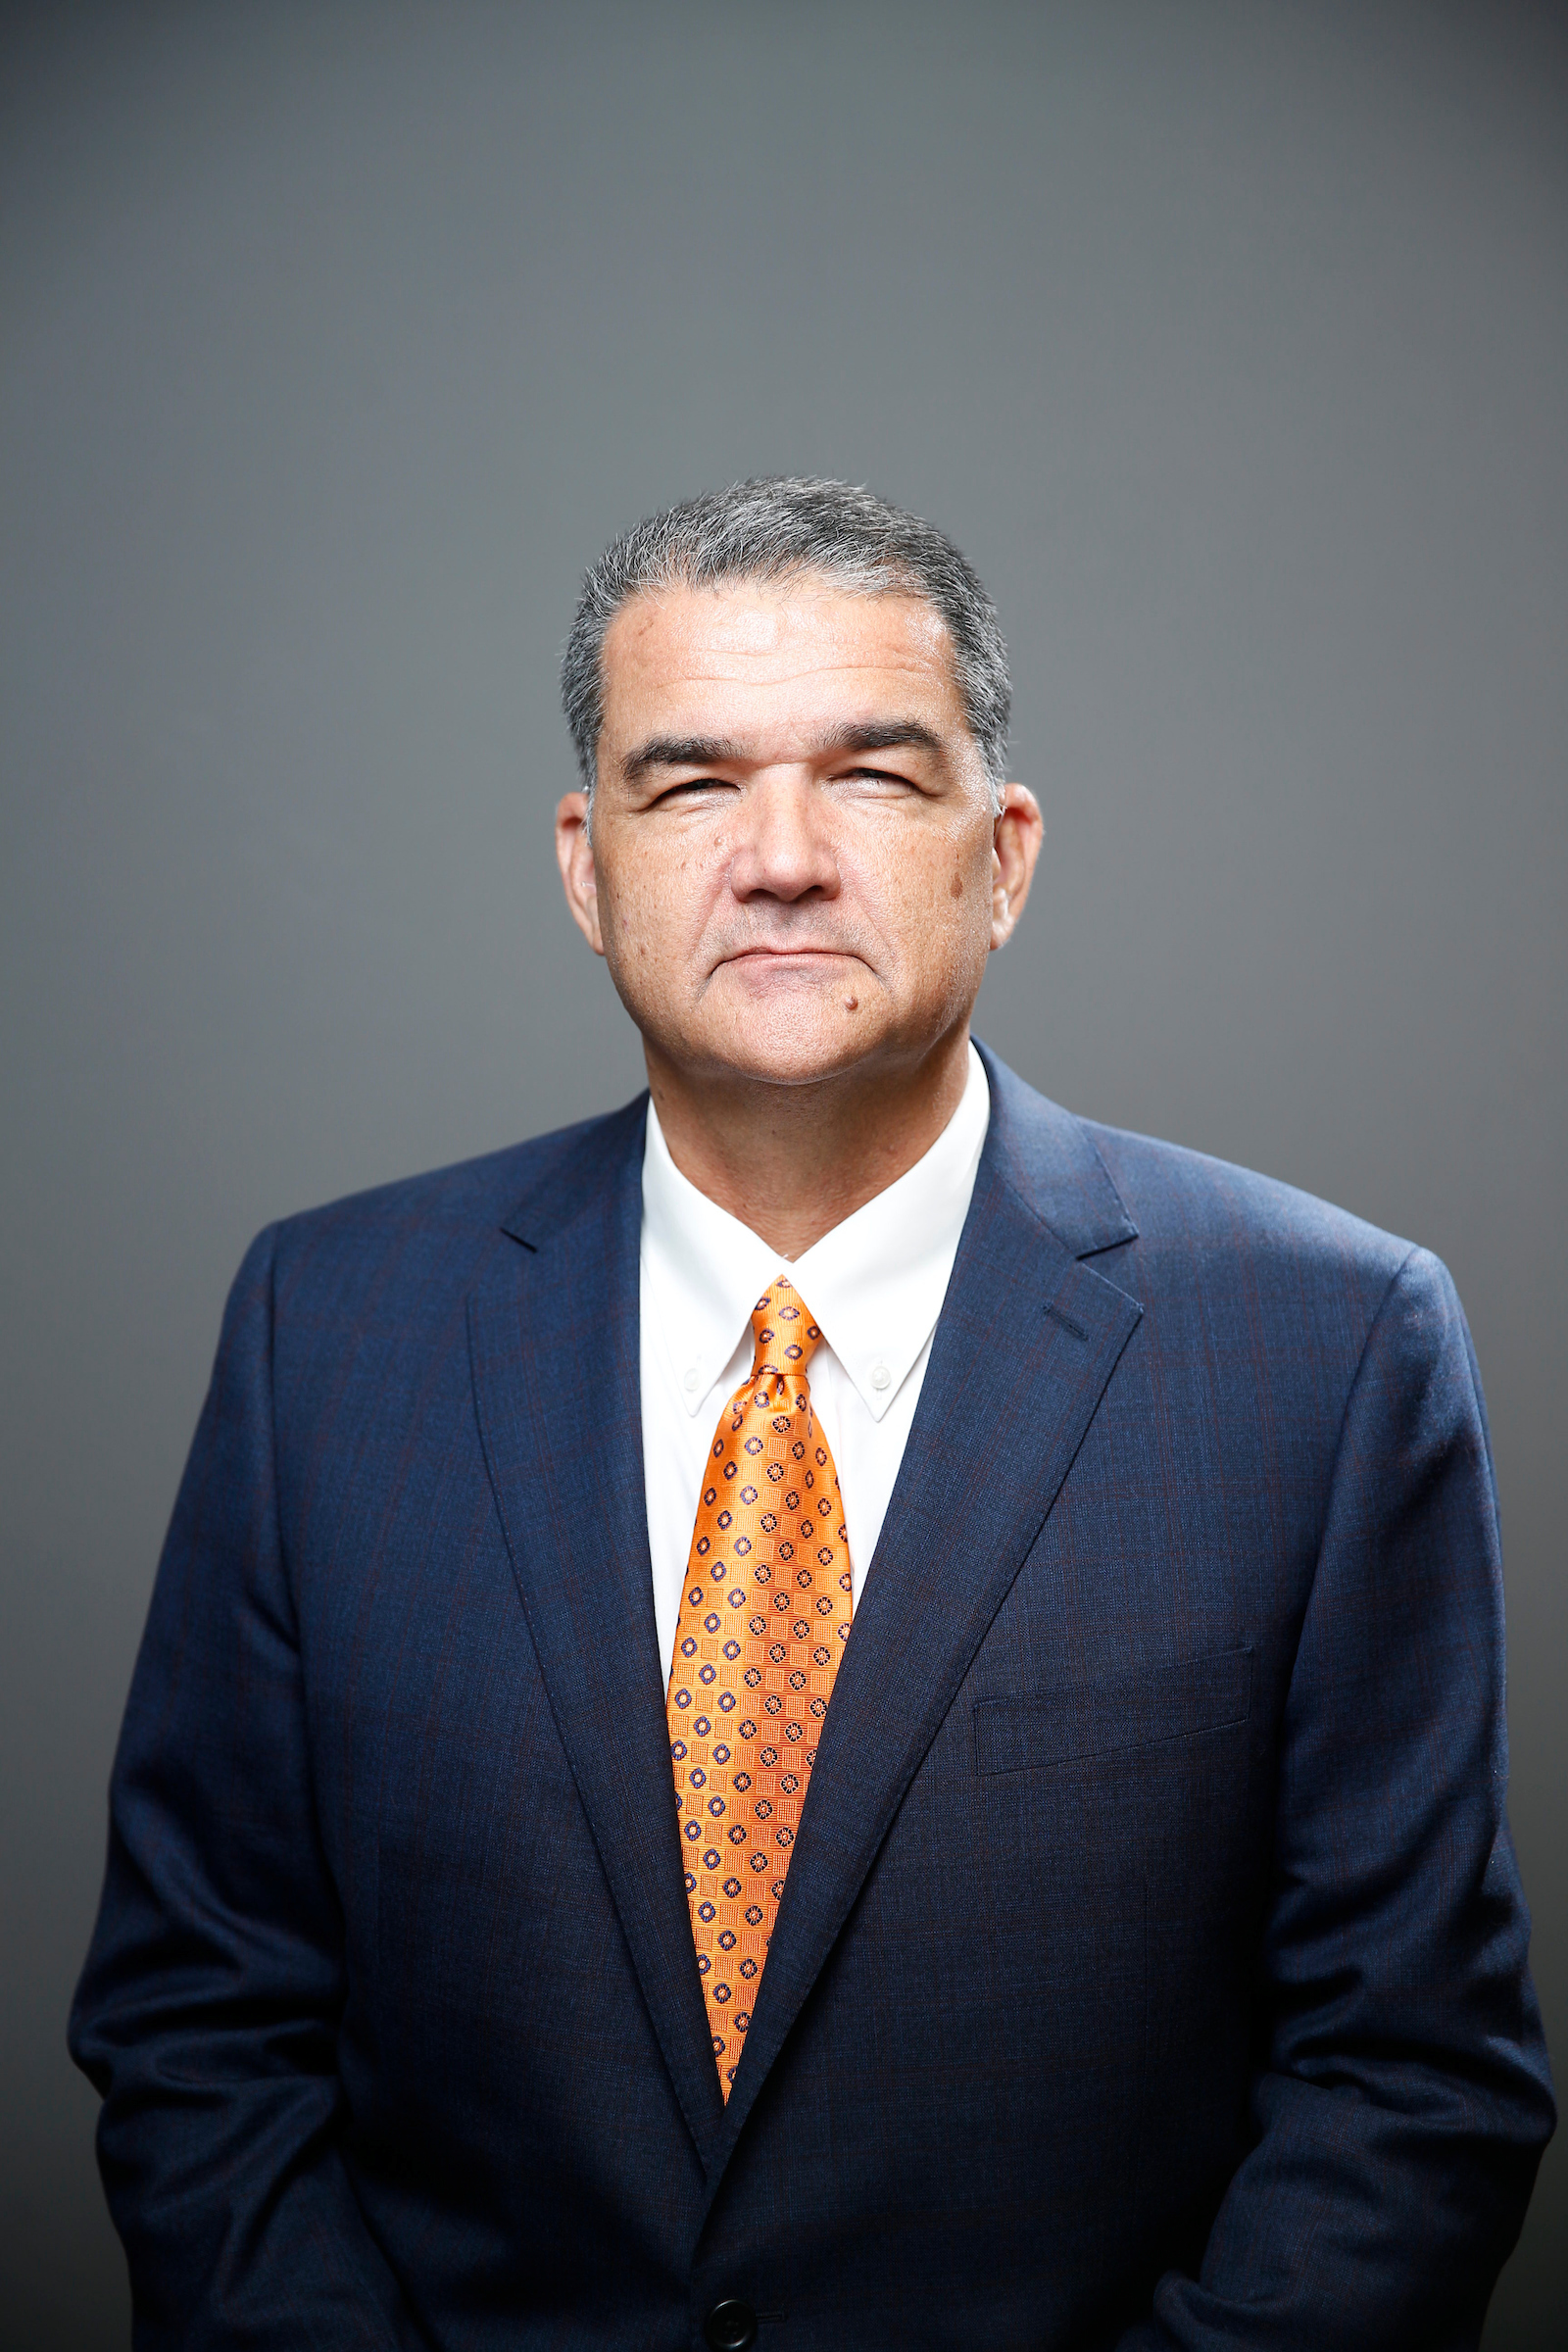 Dr. Saladin - hispanic male wearing suit with orange tie.